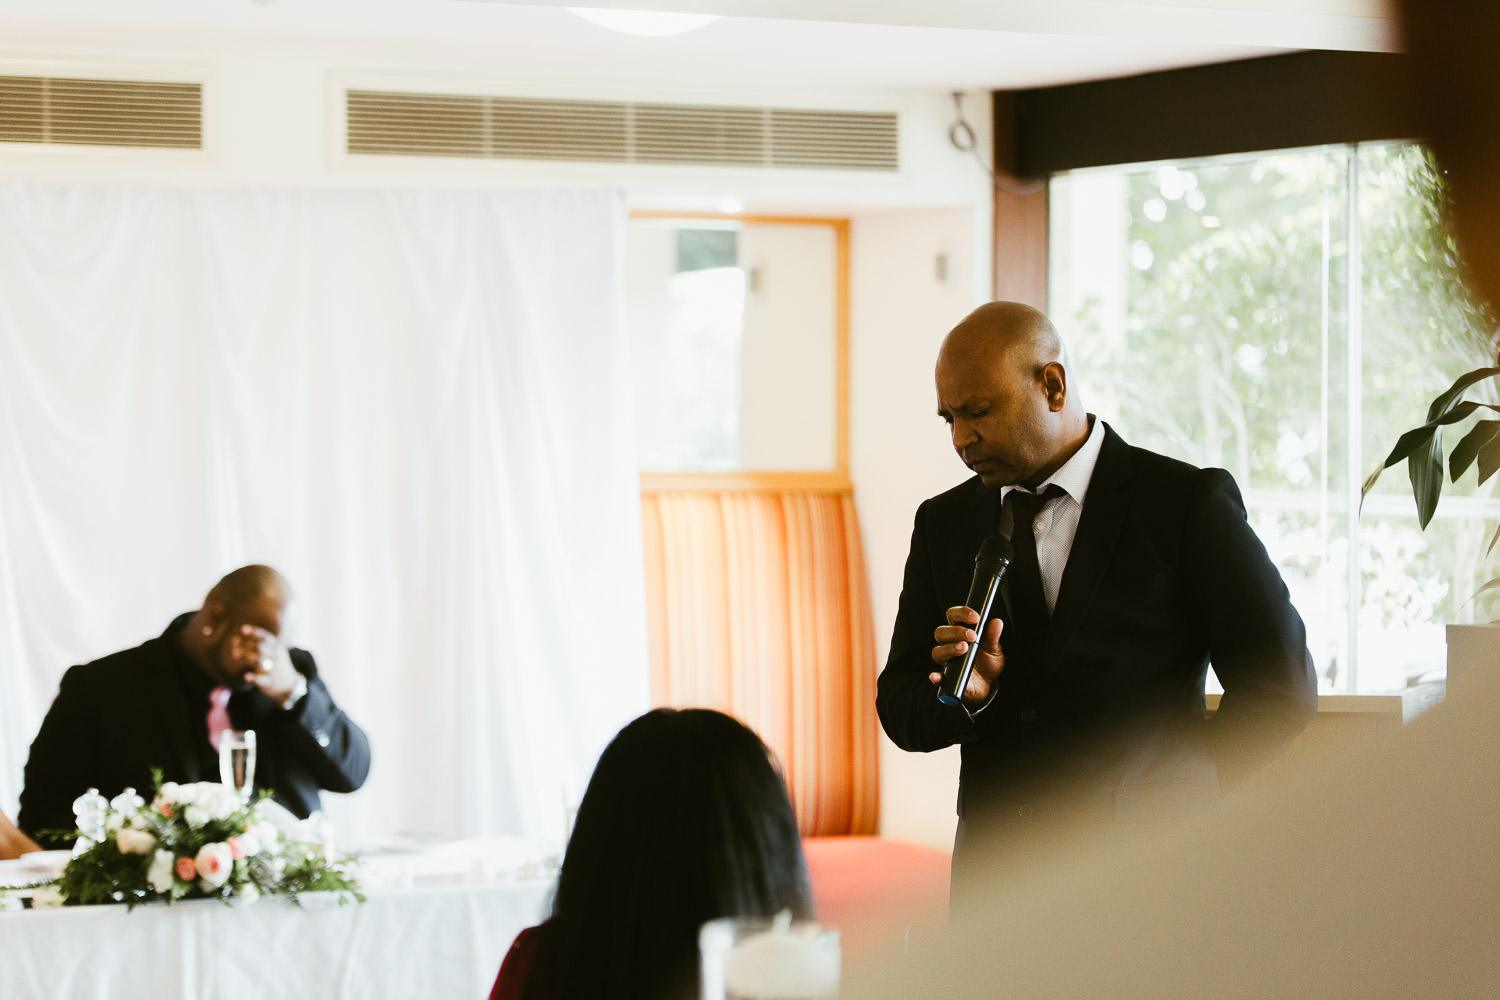 Father of groom trying to contain himself with the groom emotional in background